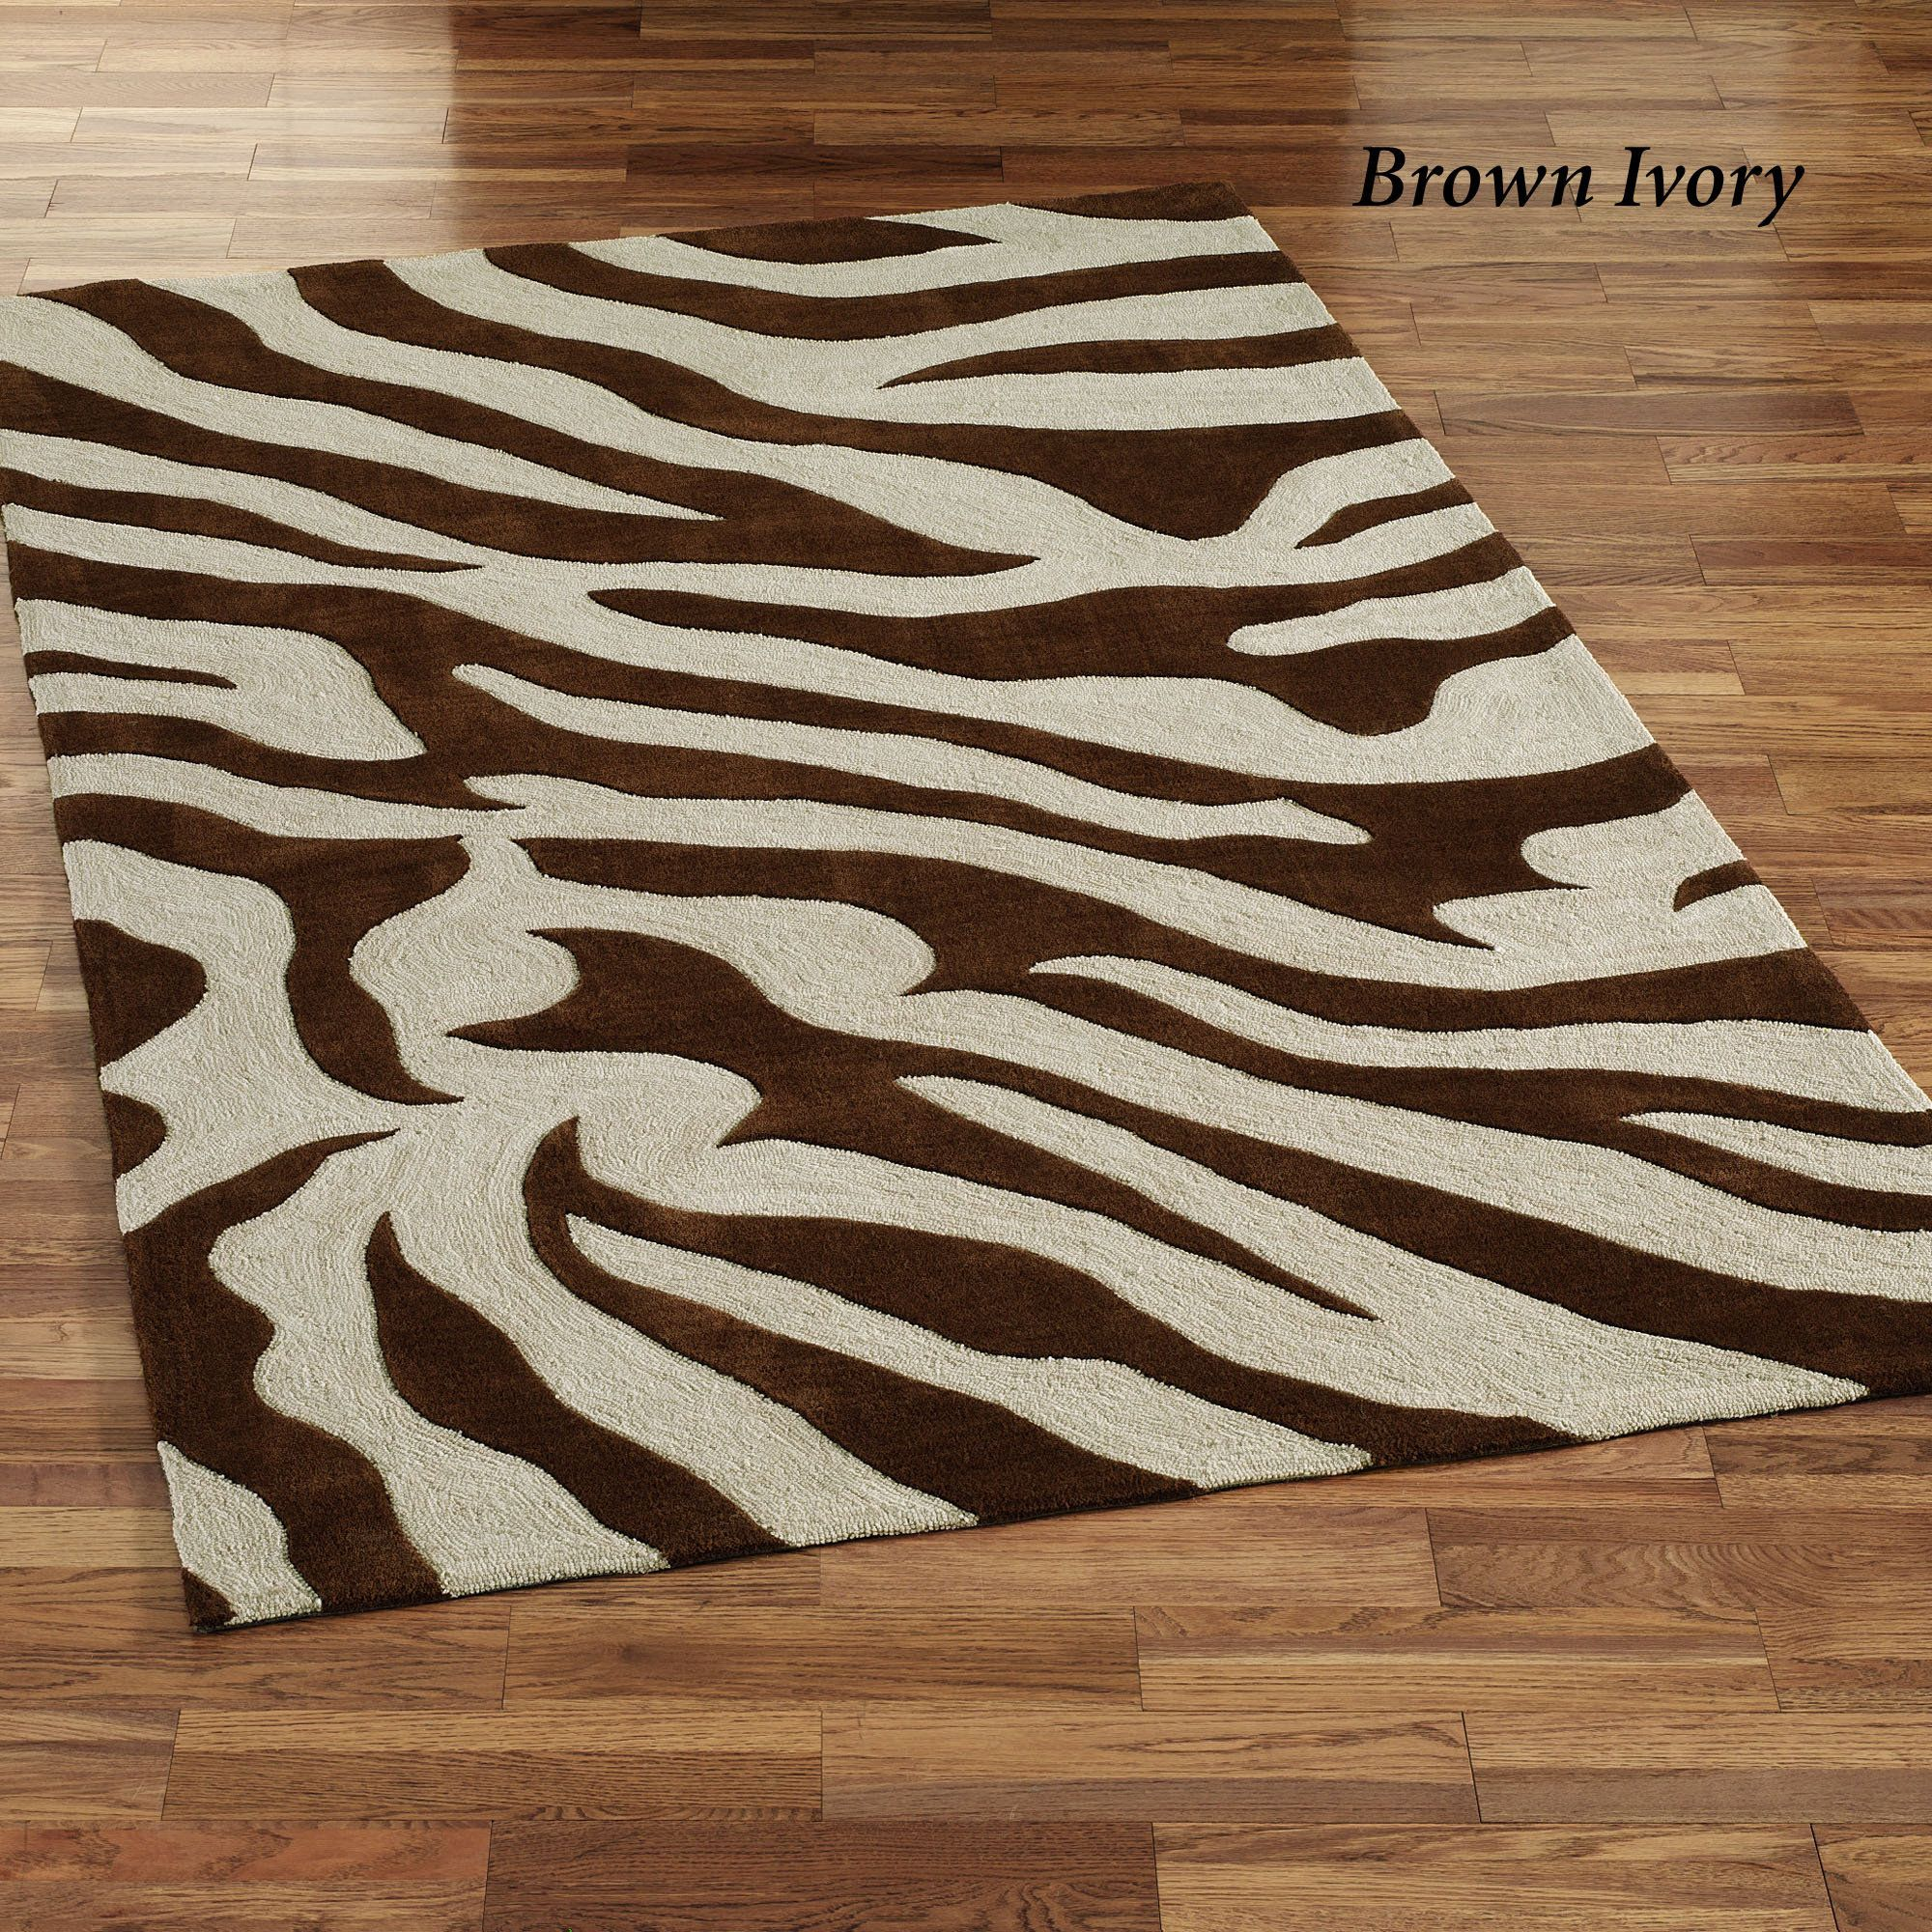 most popular area rugs lowes cool rugs lowes design ideas with inspiring lowes area rugs - Rug Design Ideas